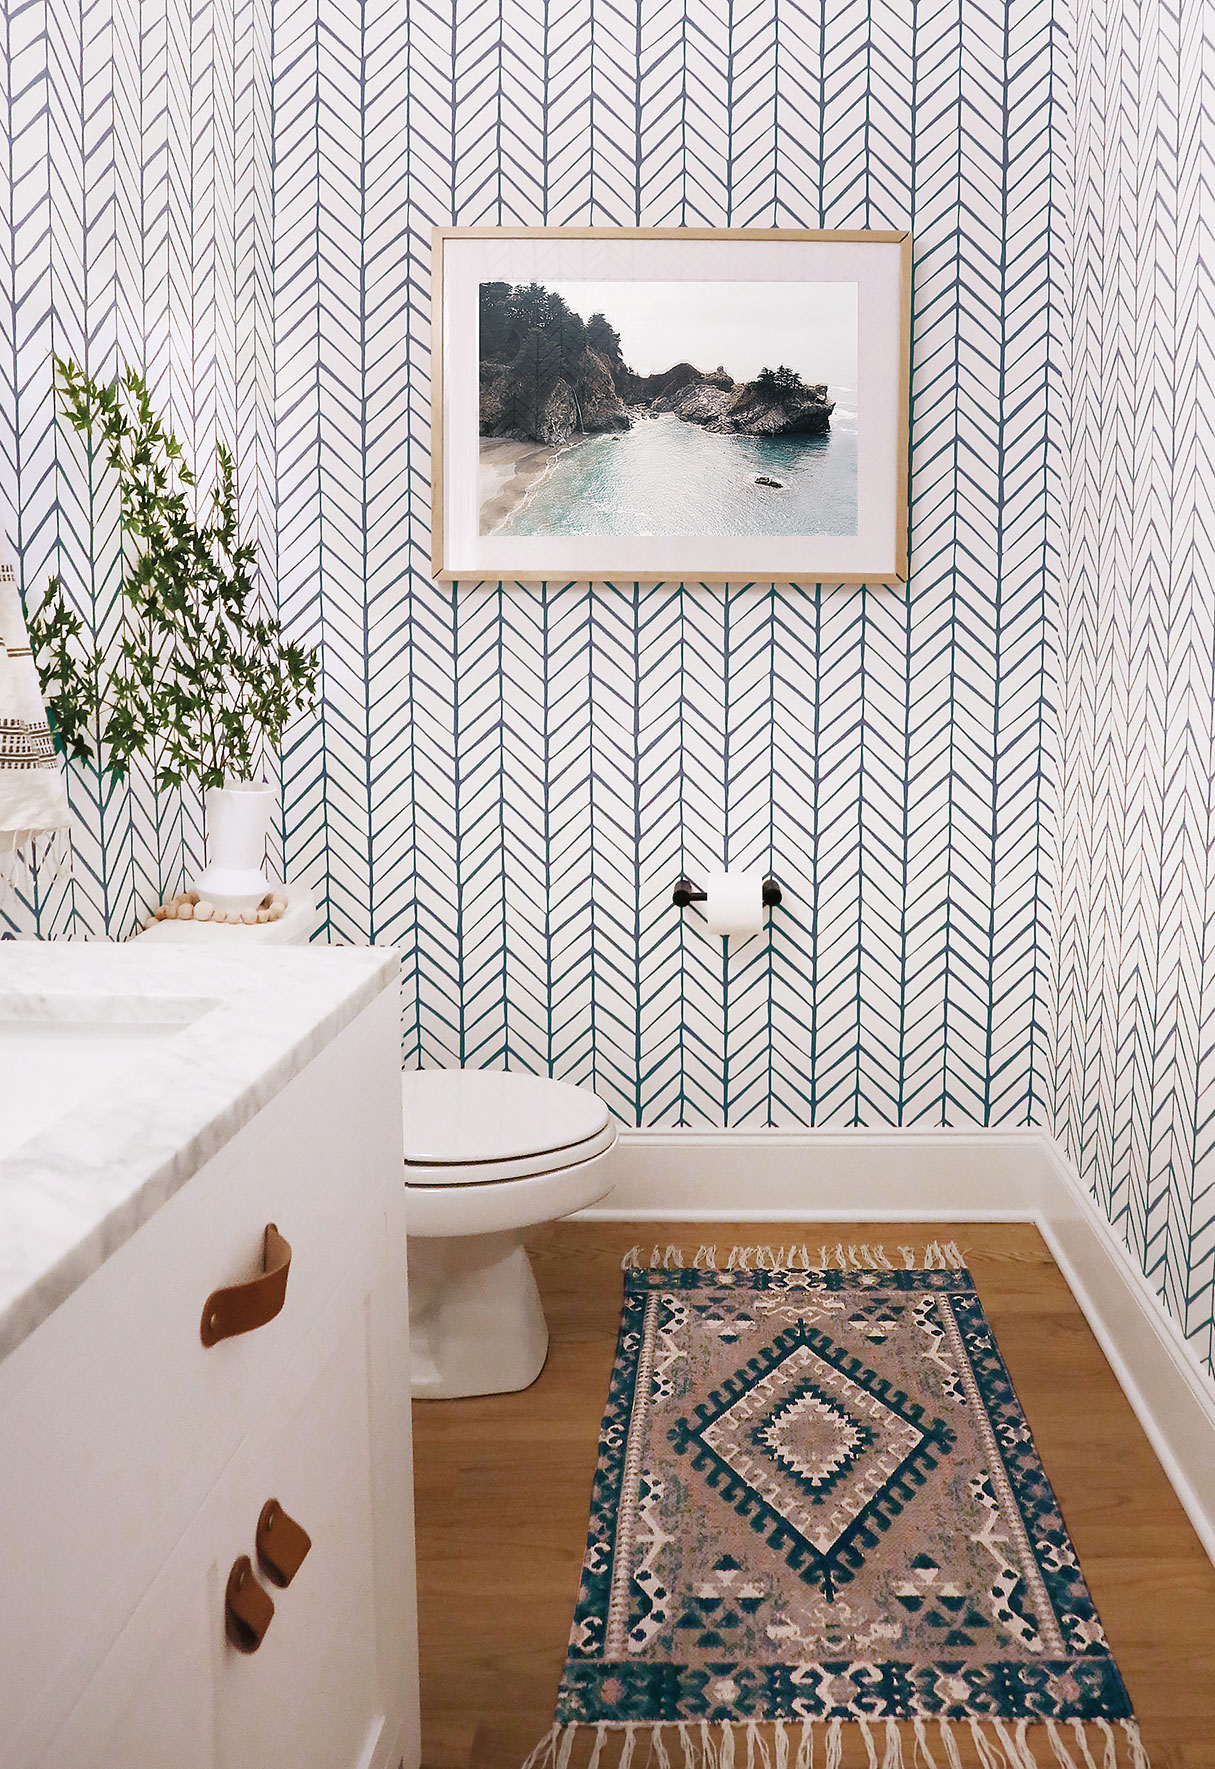 A PLAYFUL POWDER ROOM